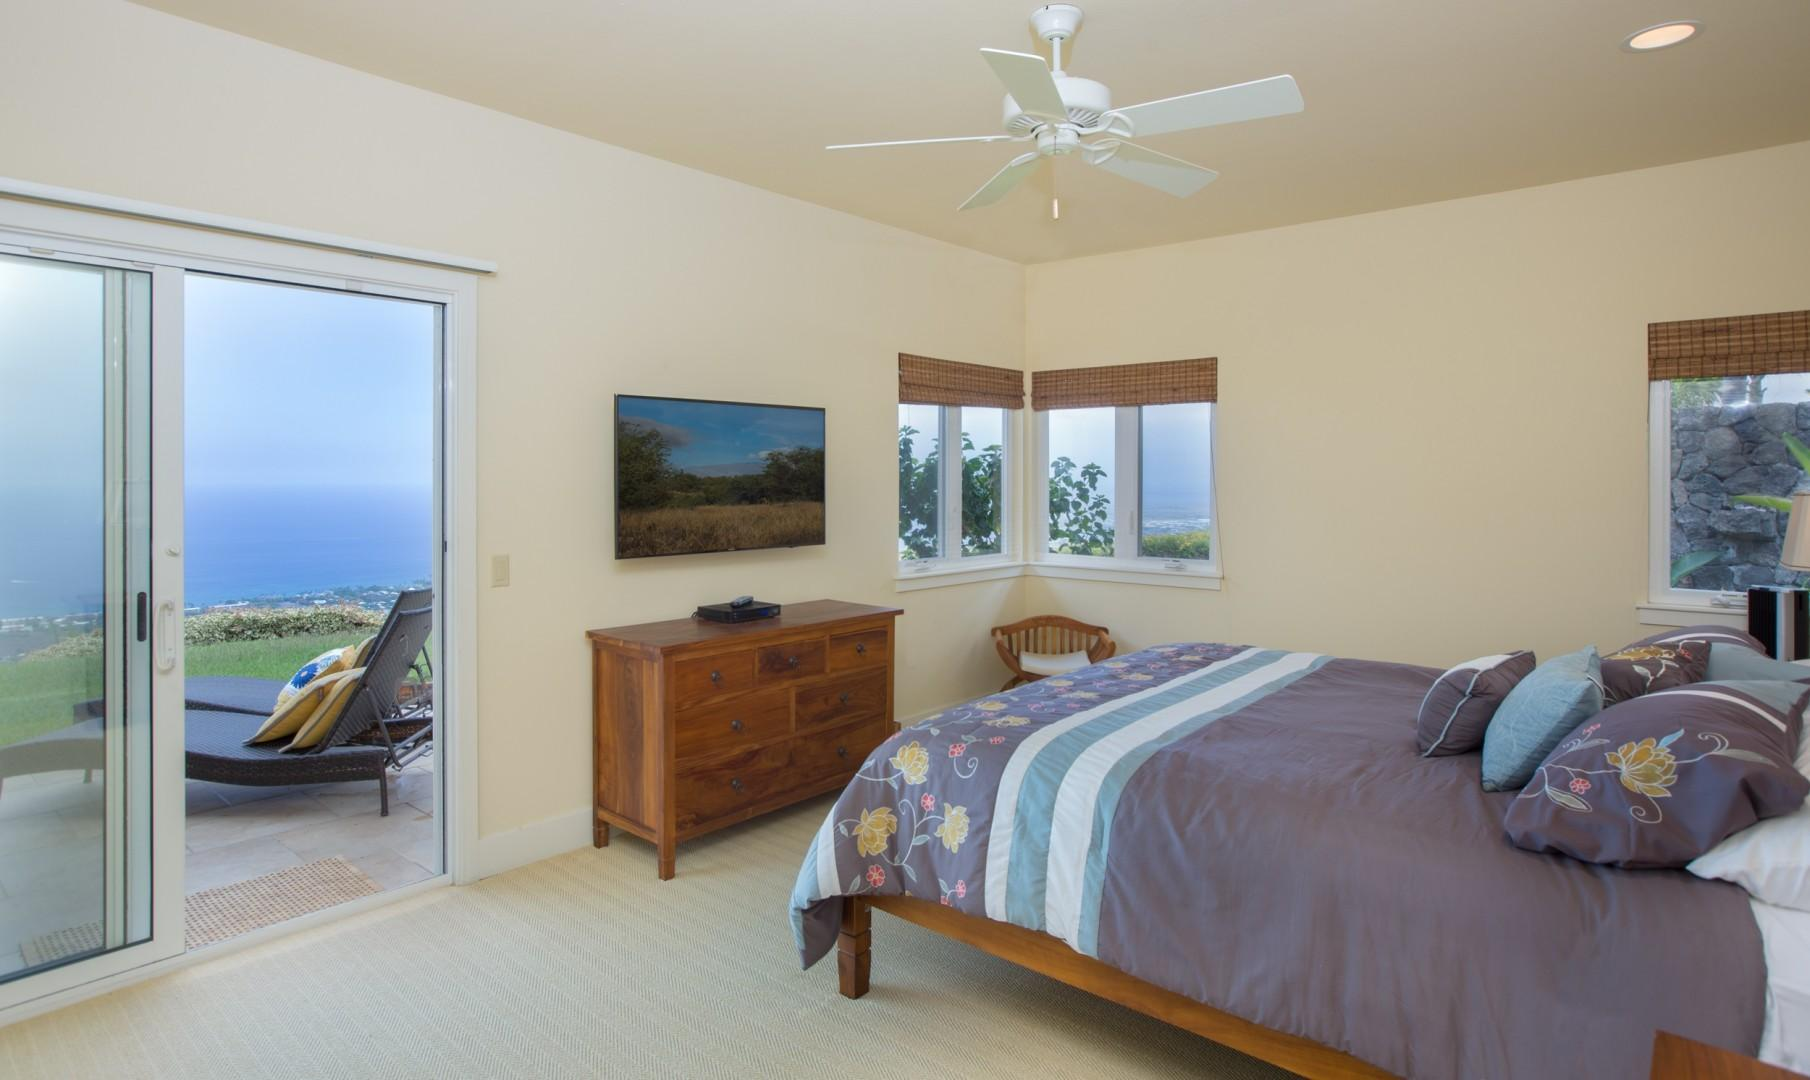 Spacious Master Bedroom with unbelievable views